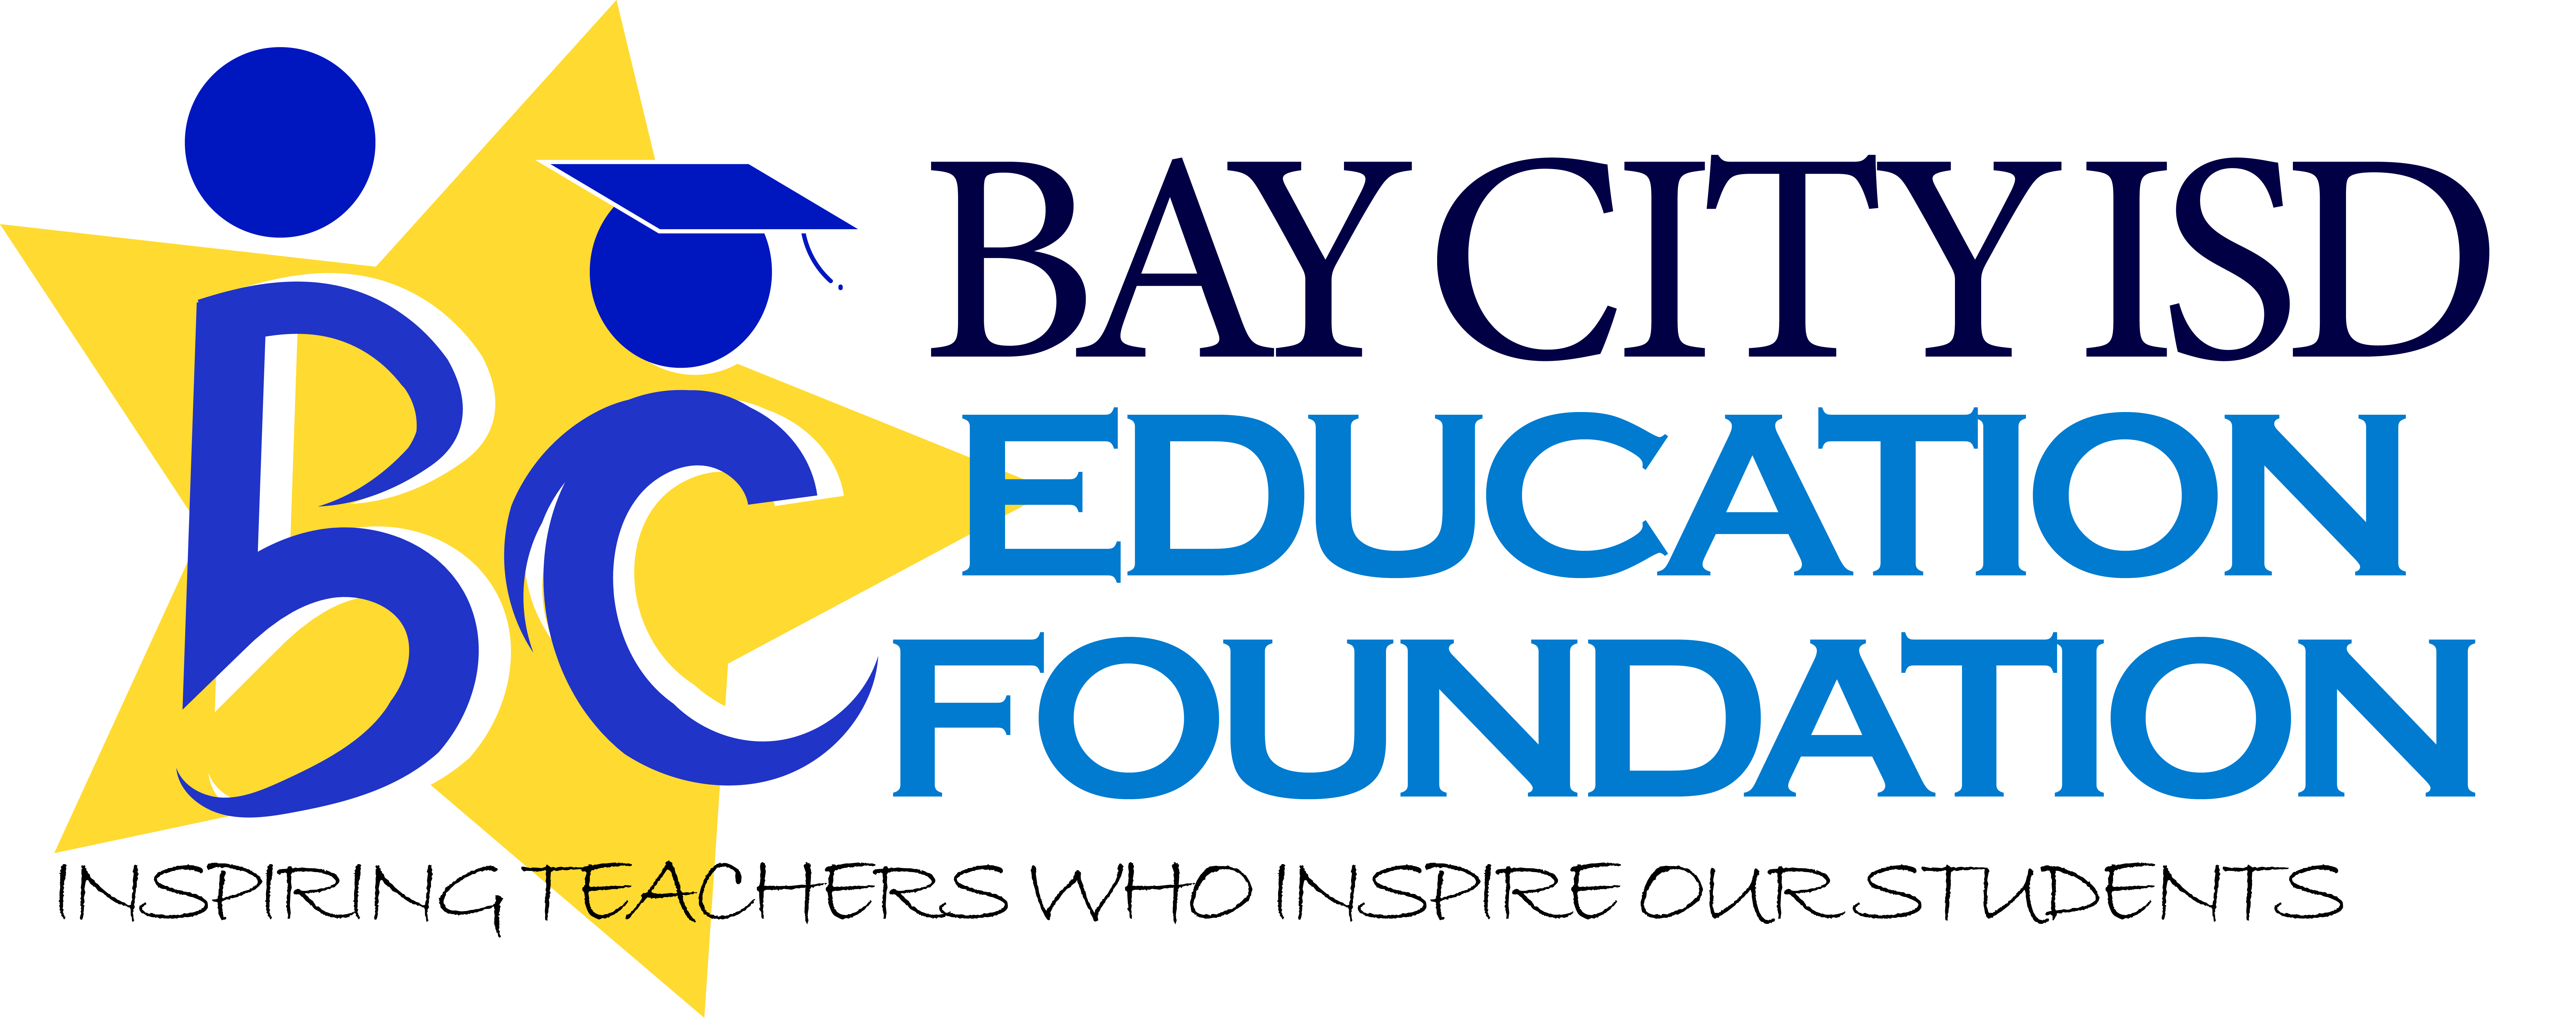 Bay City ISD Education Foundation